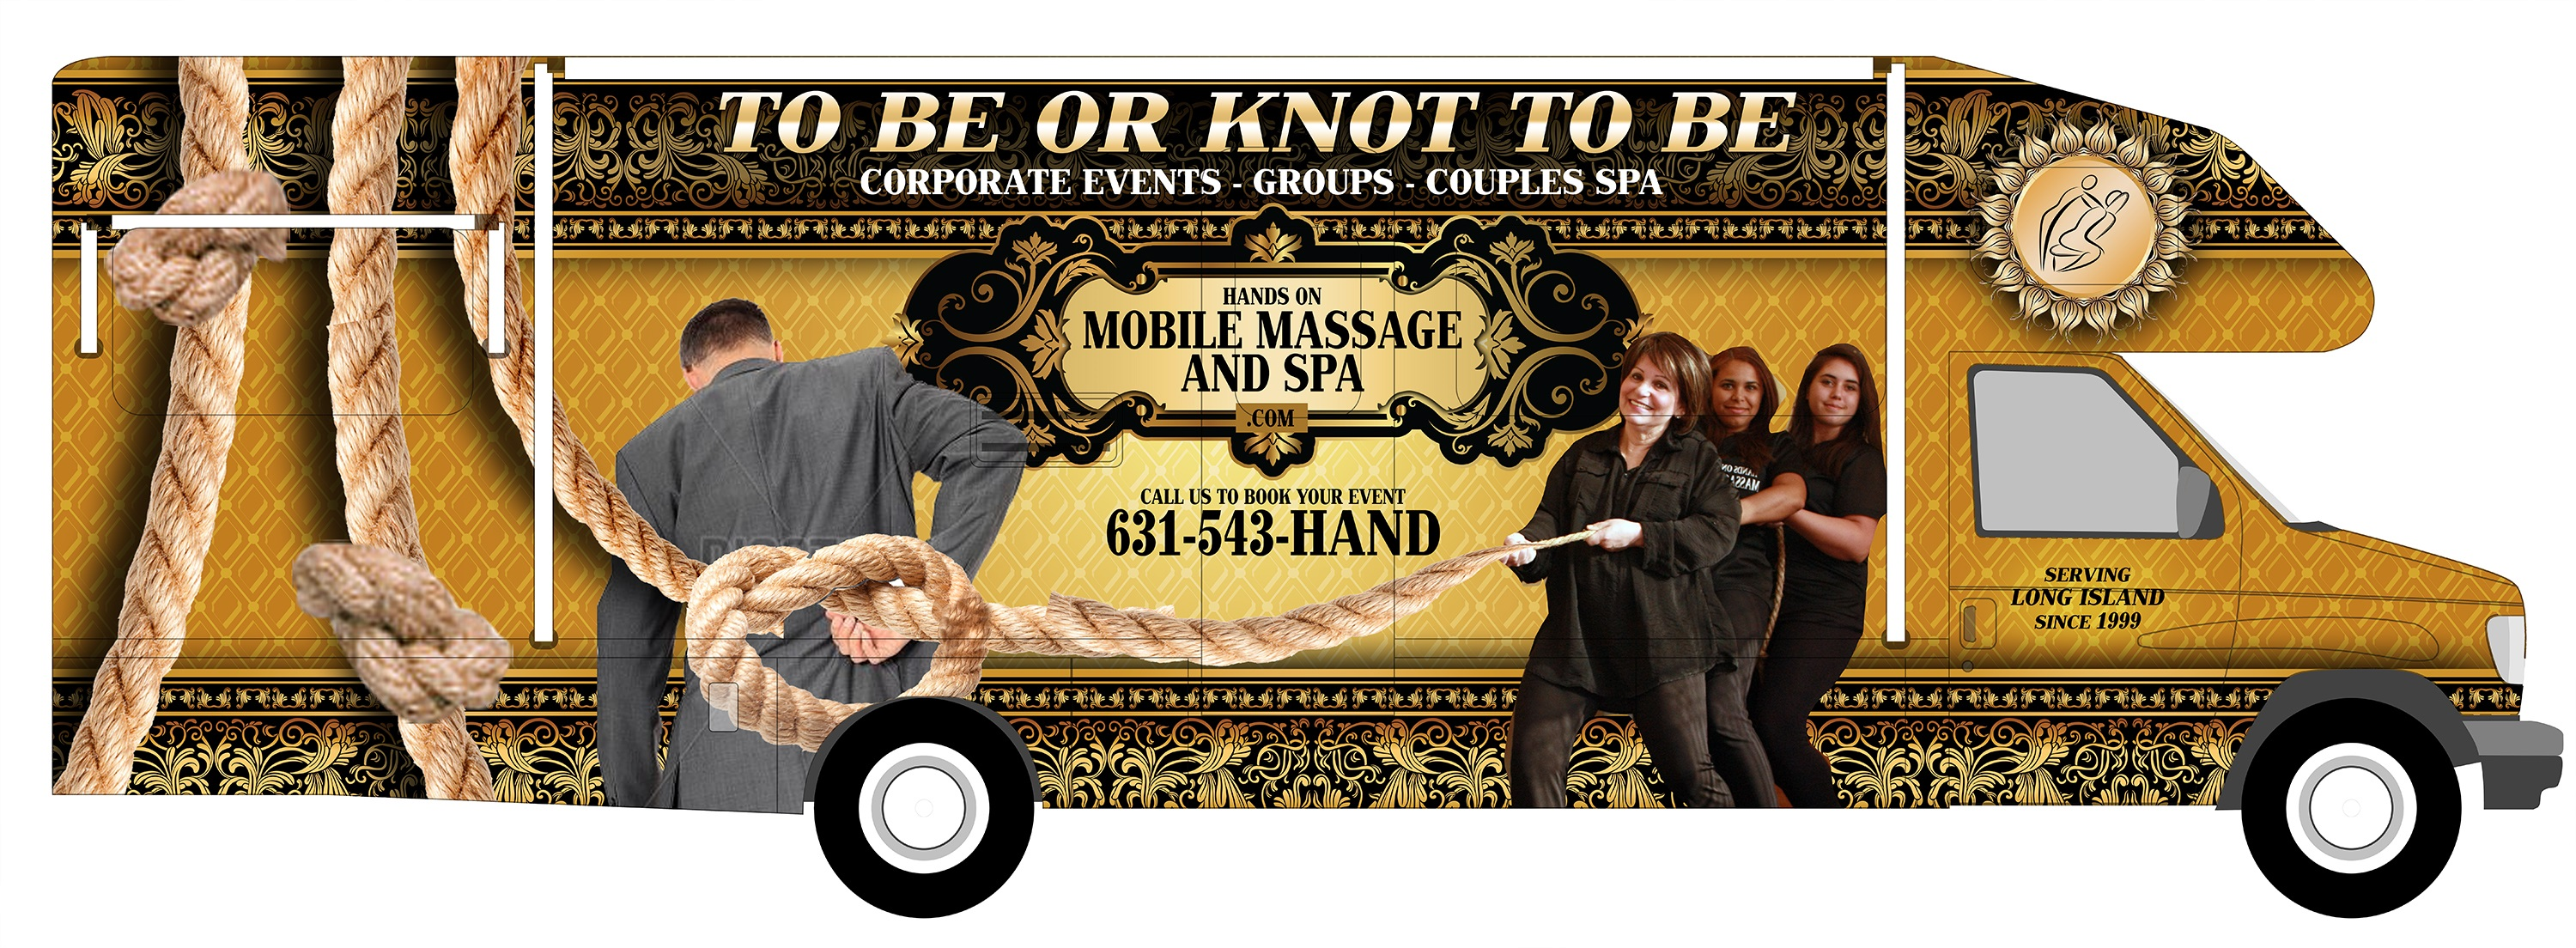 Hands On Mobile Massage And Spa Of Long Island Now Offers